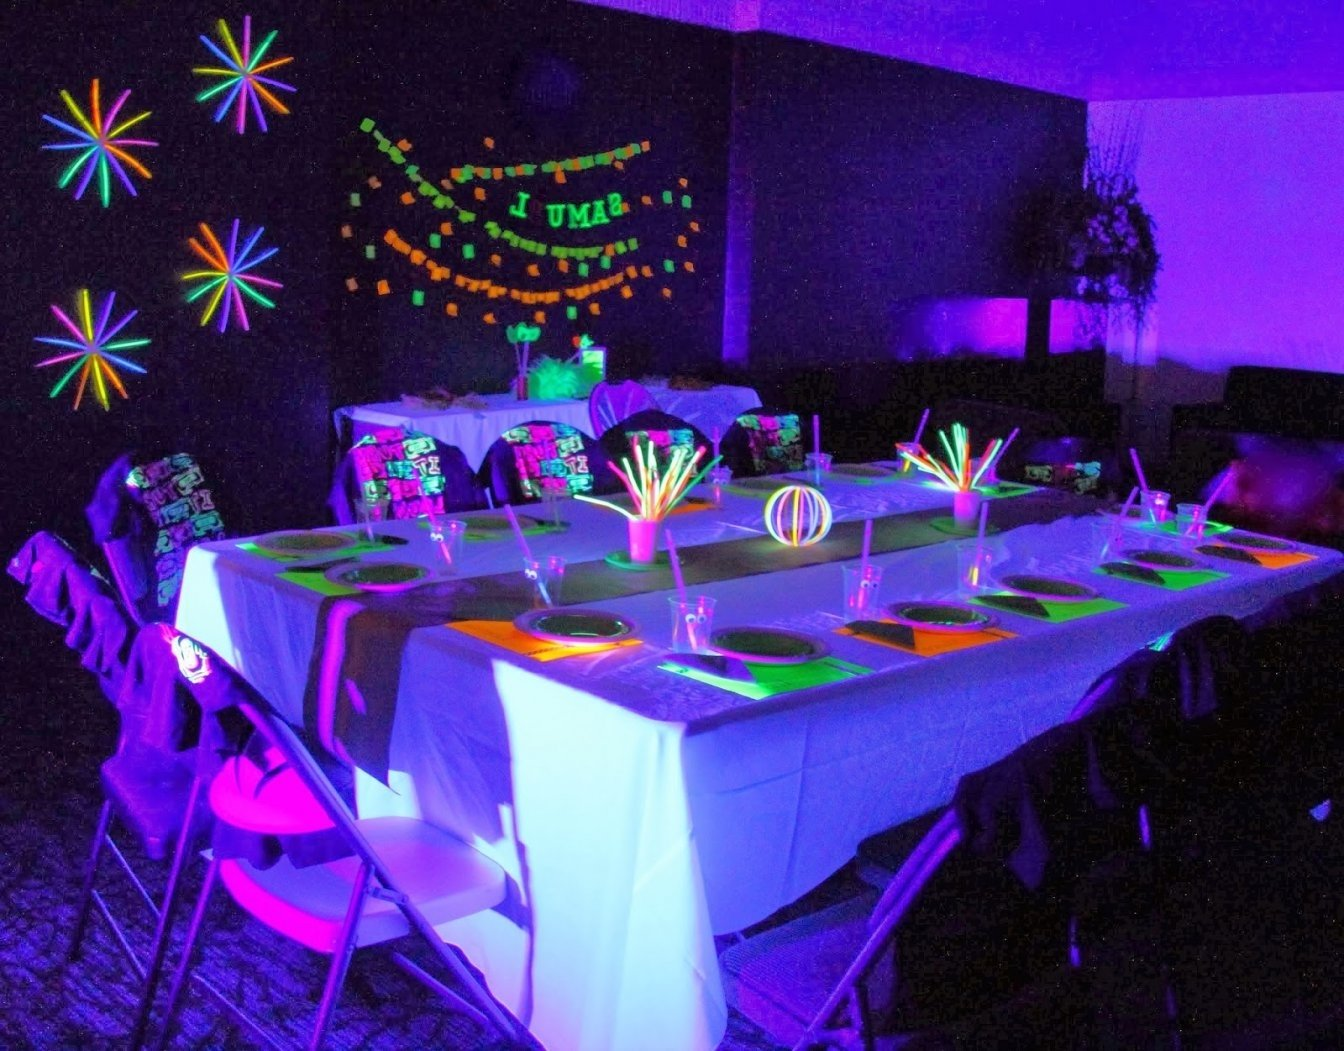 10 Attractive 18Th Birthday Party Ideas For Guys 18th birthday party ideas that are grand for guys amazing 18th 2020